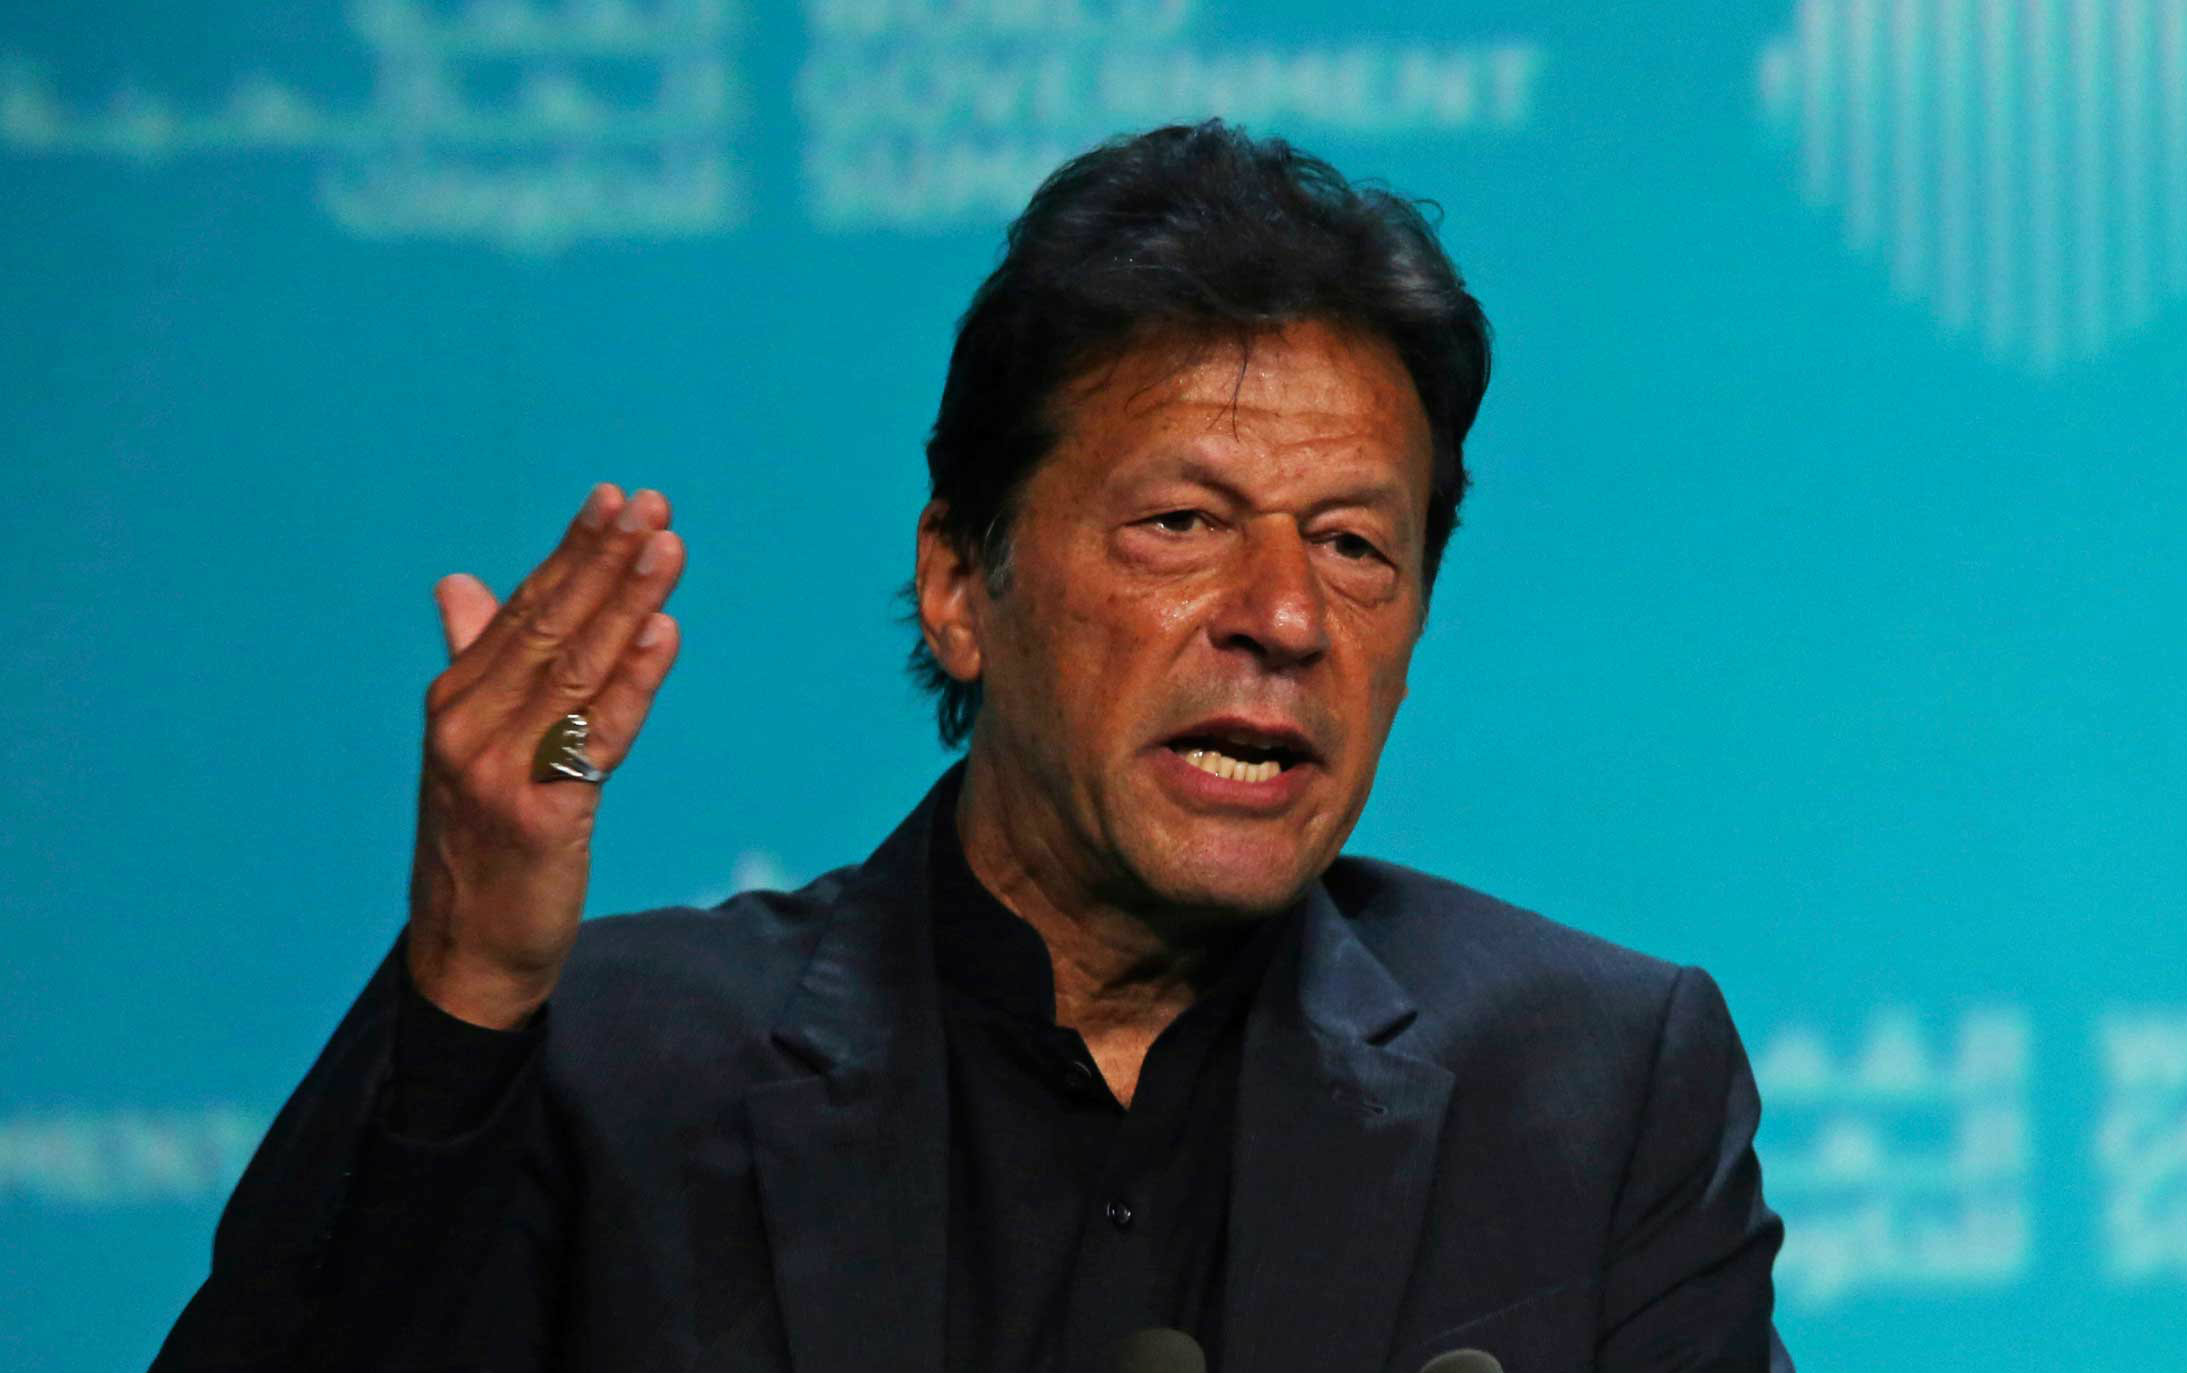 In an unusual move, Imran Khan's Pakistan Tehreek-e-Insaf party tweeted his statement in Hindi, obviously to catch the attention of the Indian Twitterarti.